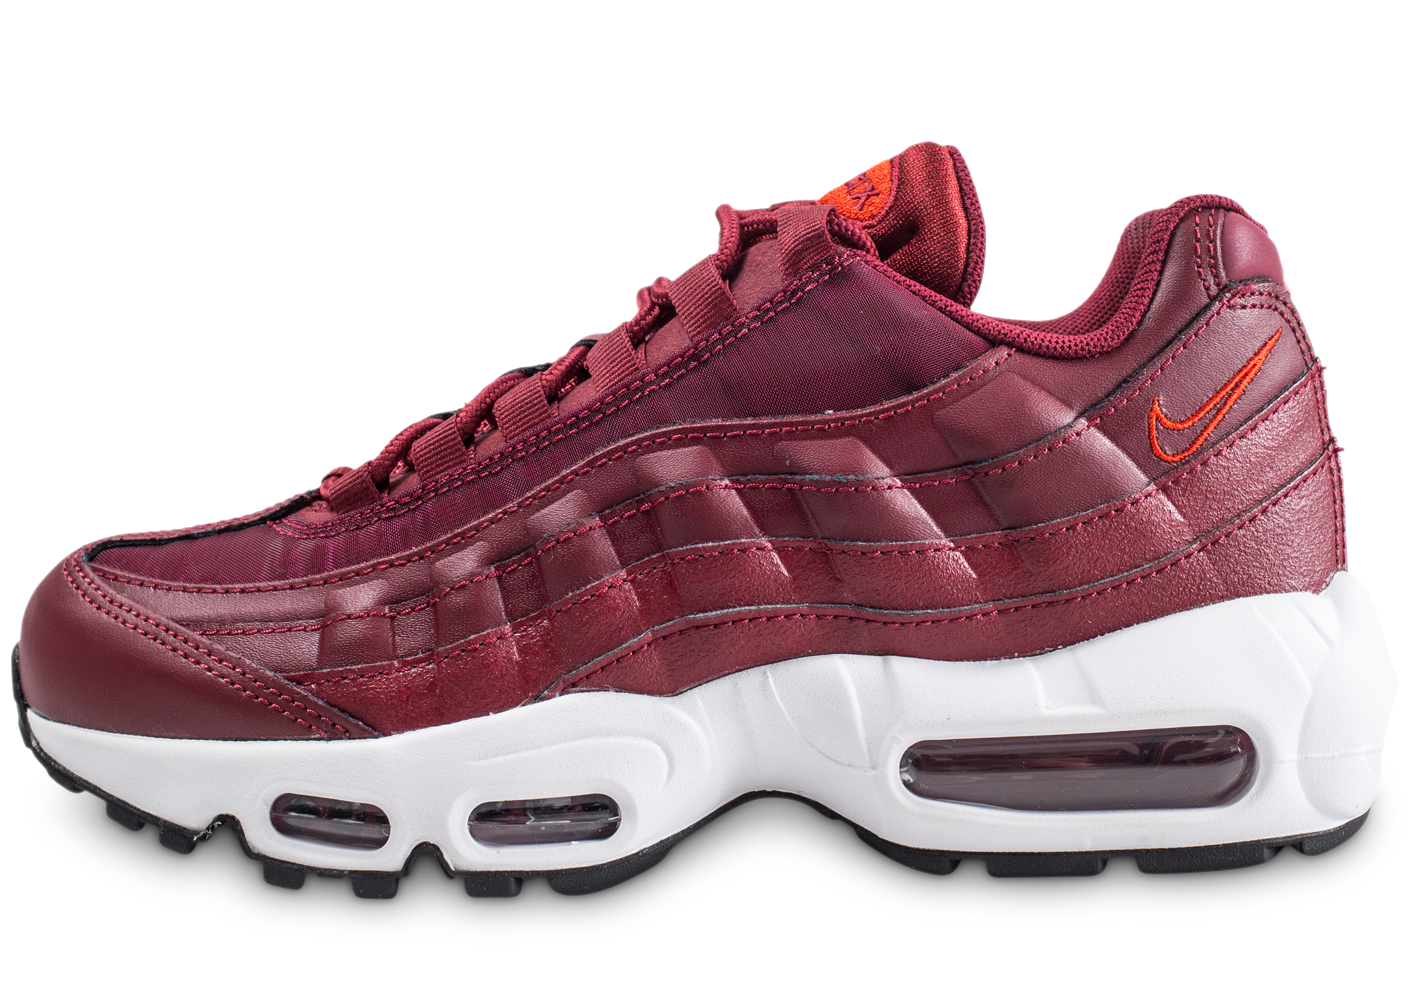 Nike air max 95 habanero femme baskets